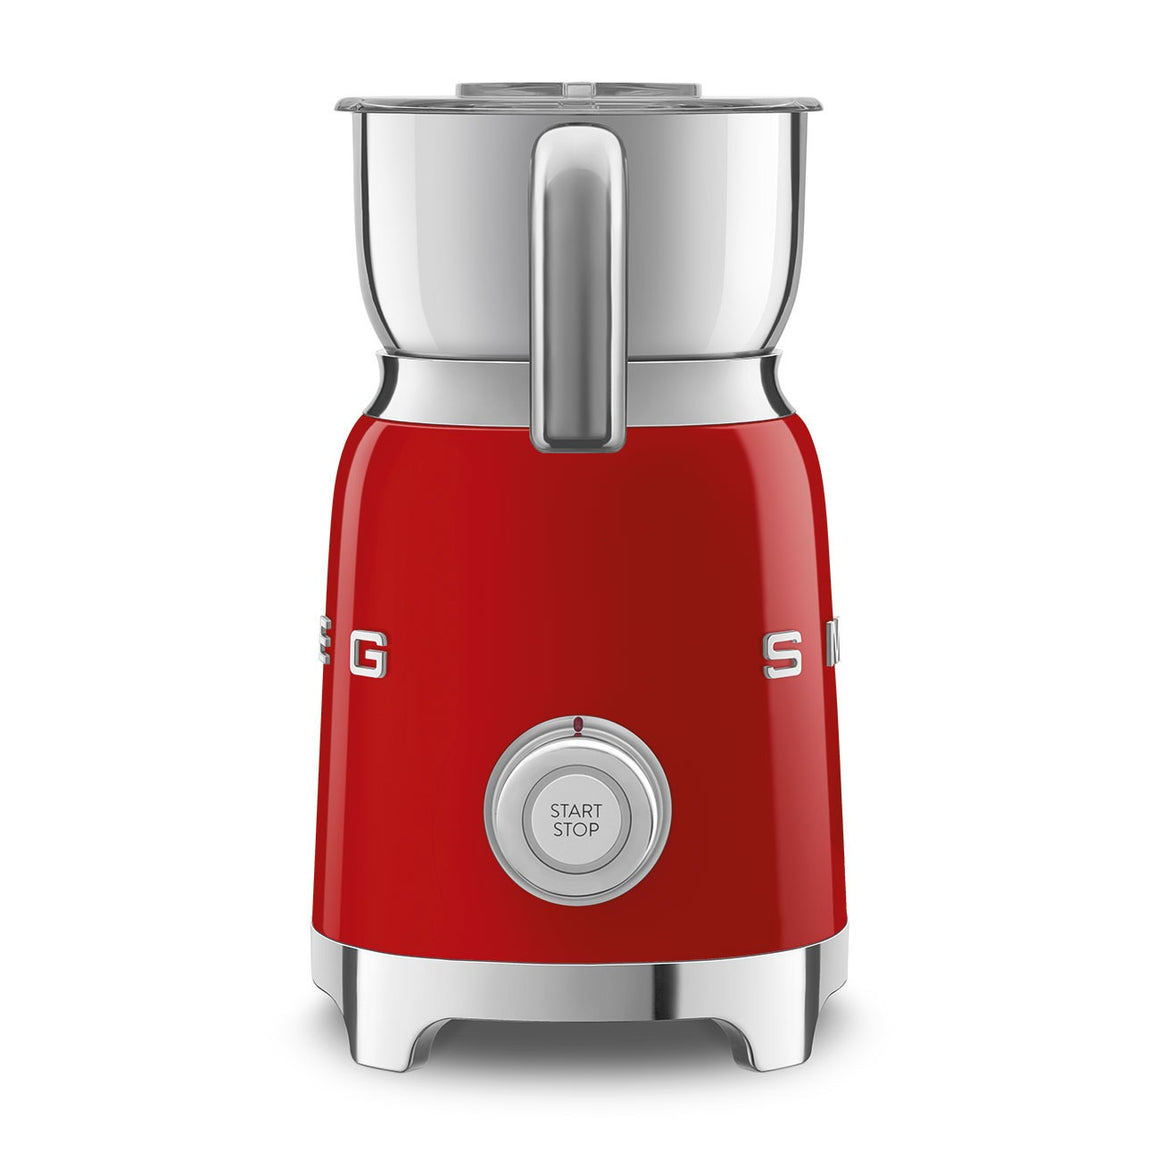 SMEG - 50's Milk Frother, Red